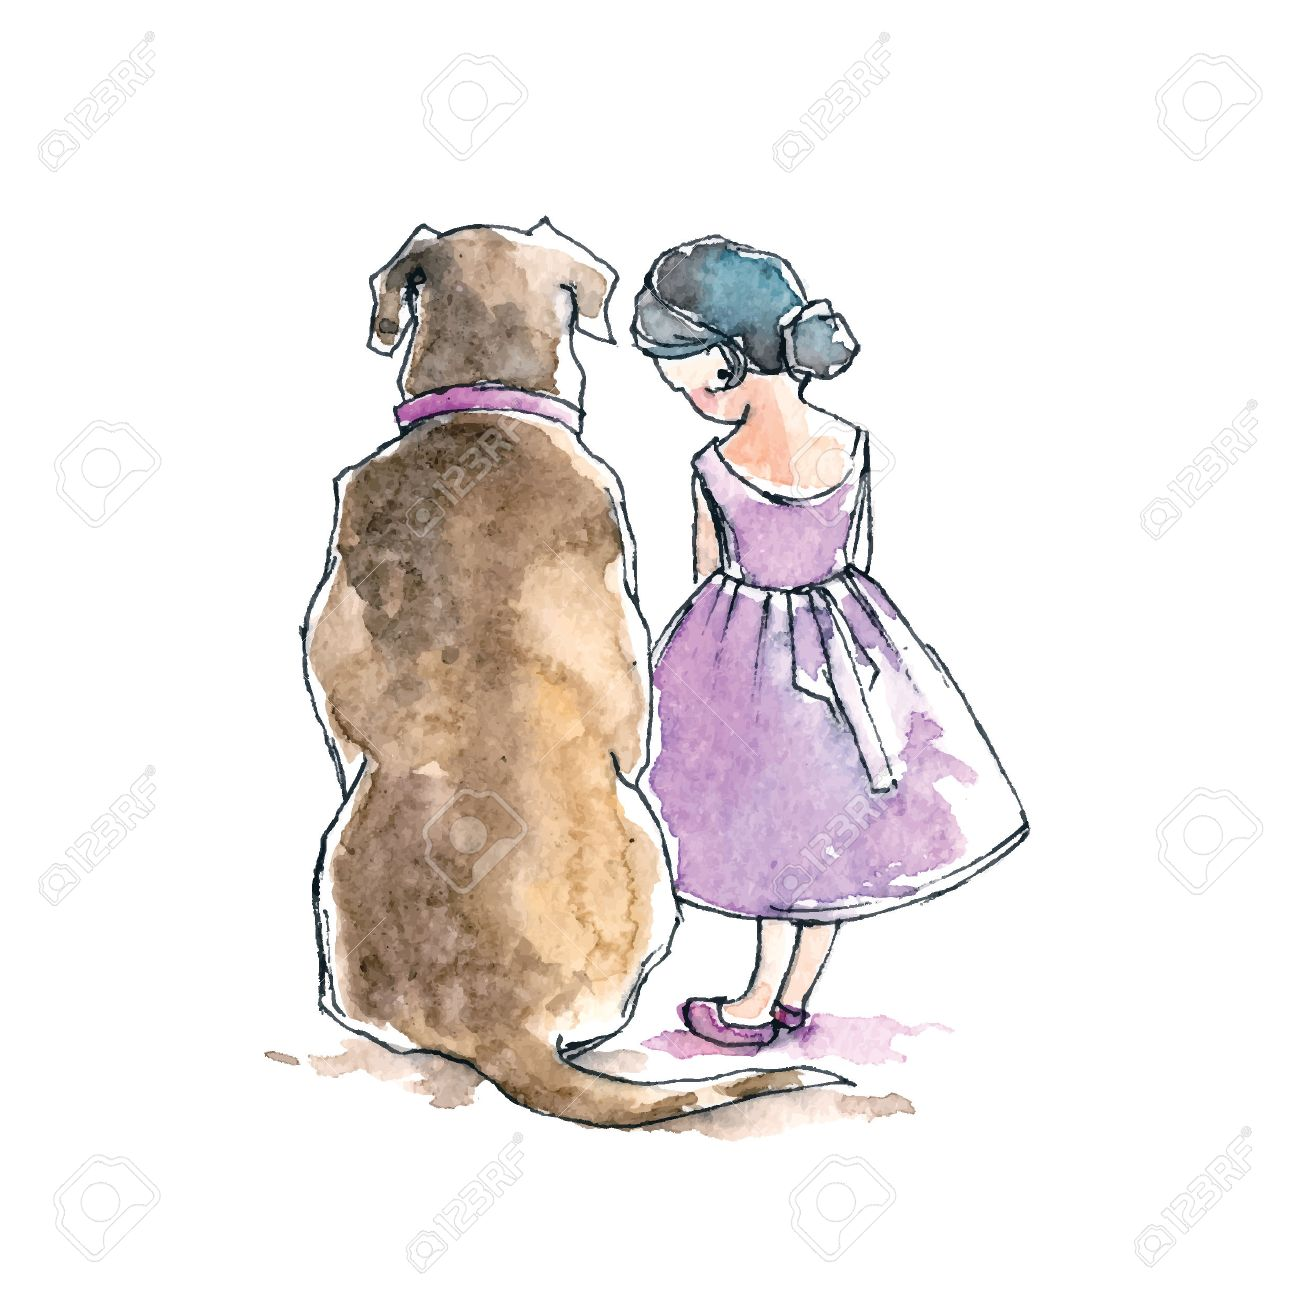 Hand Drawn Watercolor Painting Of Girl With Big Dog Friendship